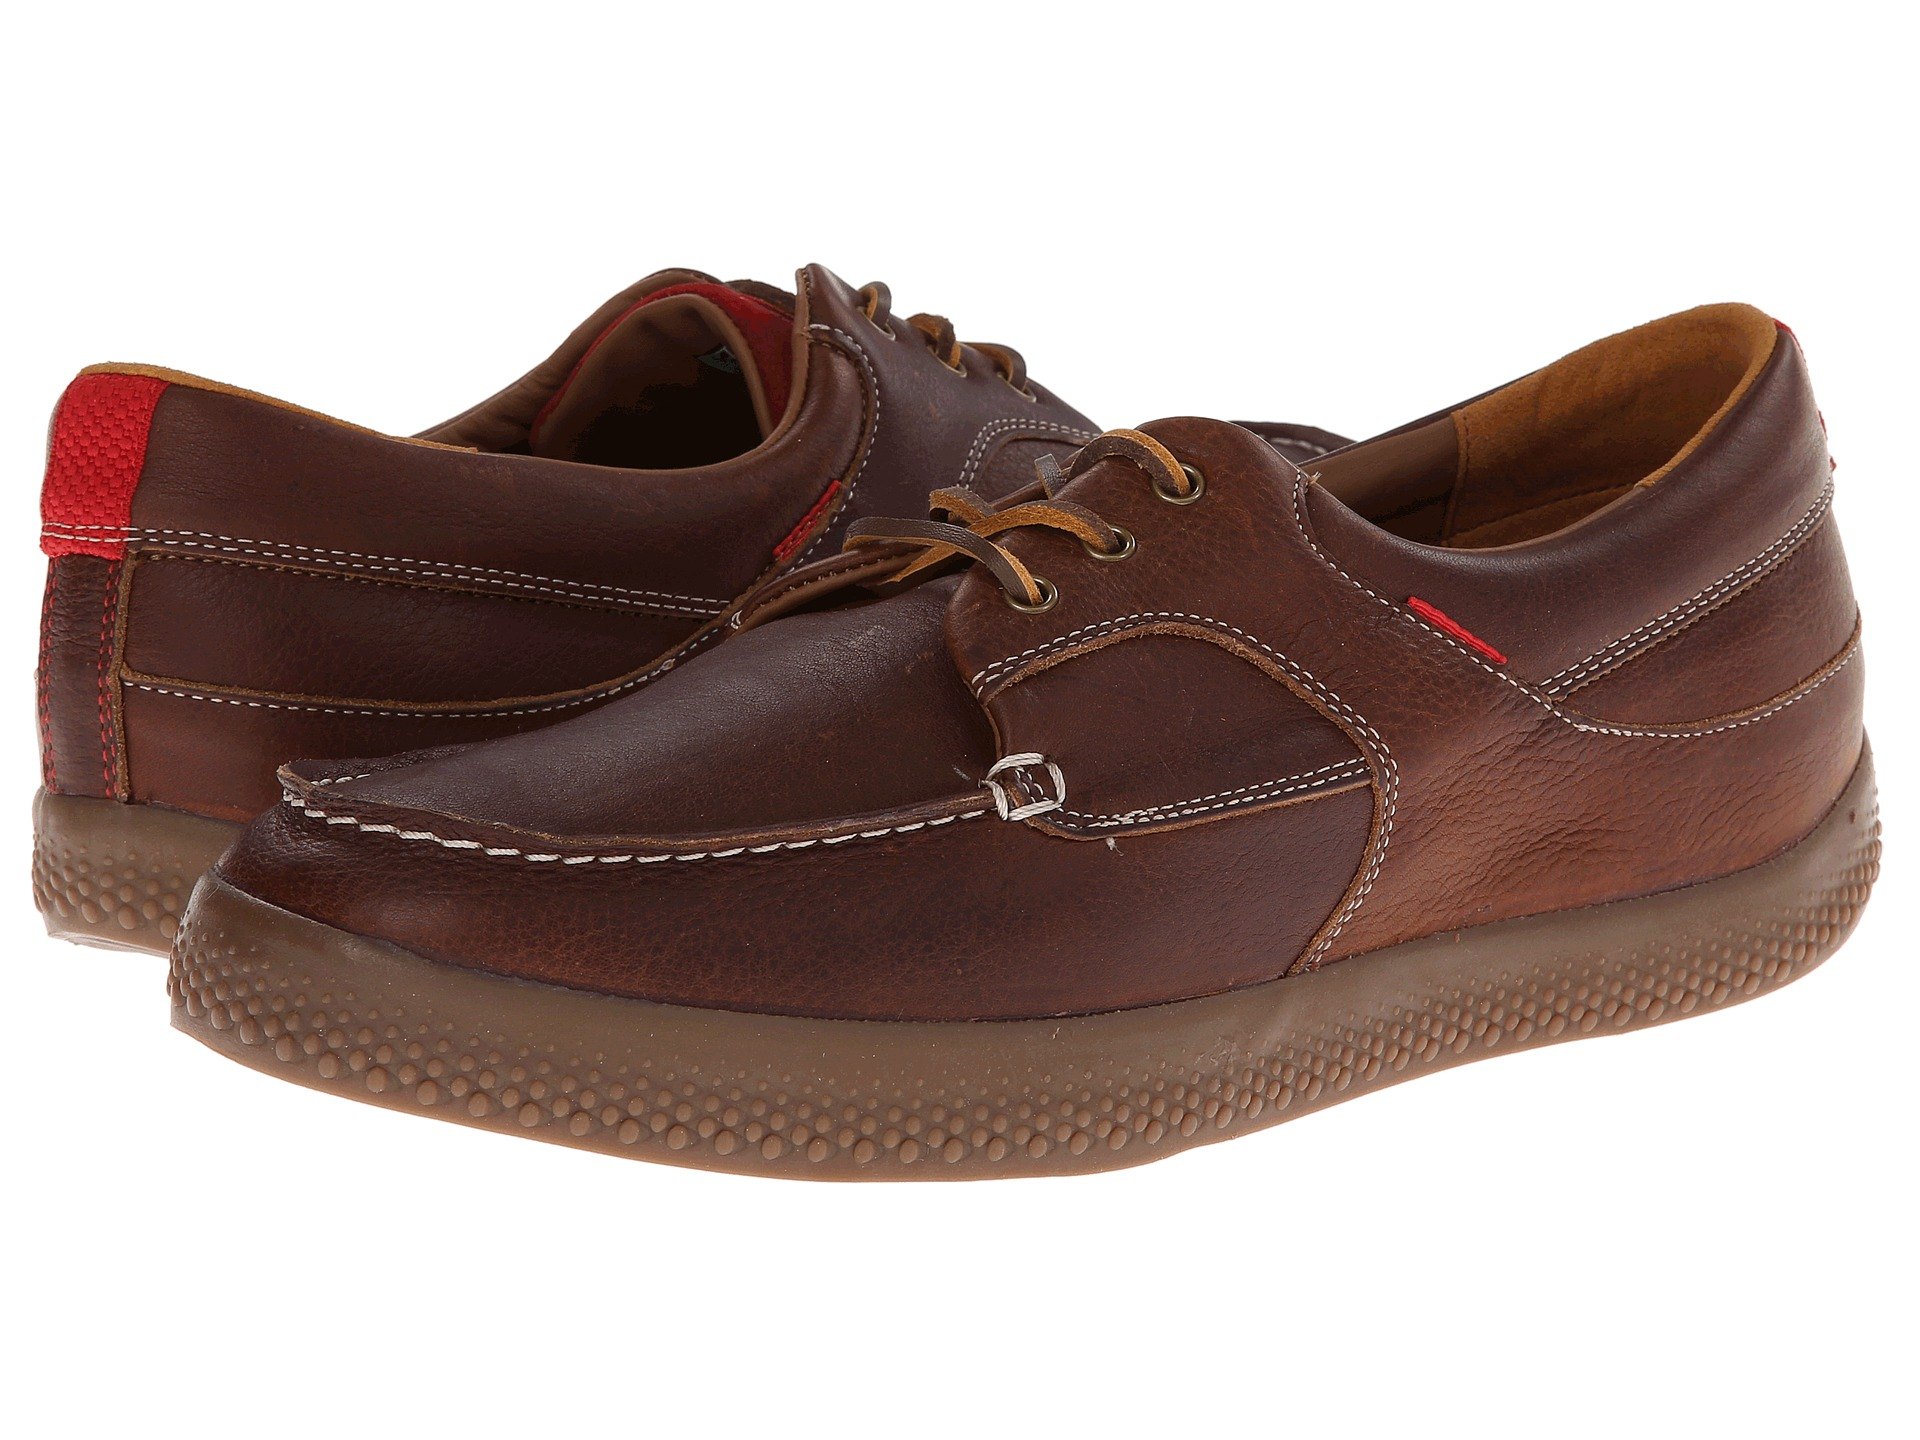 962b09d2c868ee Lyst - Fitflop Monty Boat Moc (Leather) in Brown for Men